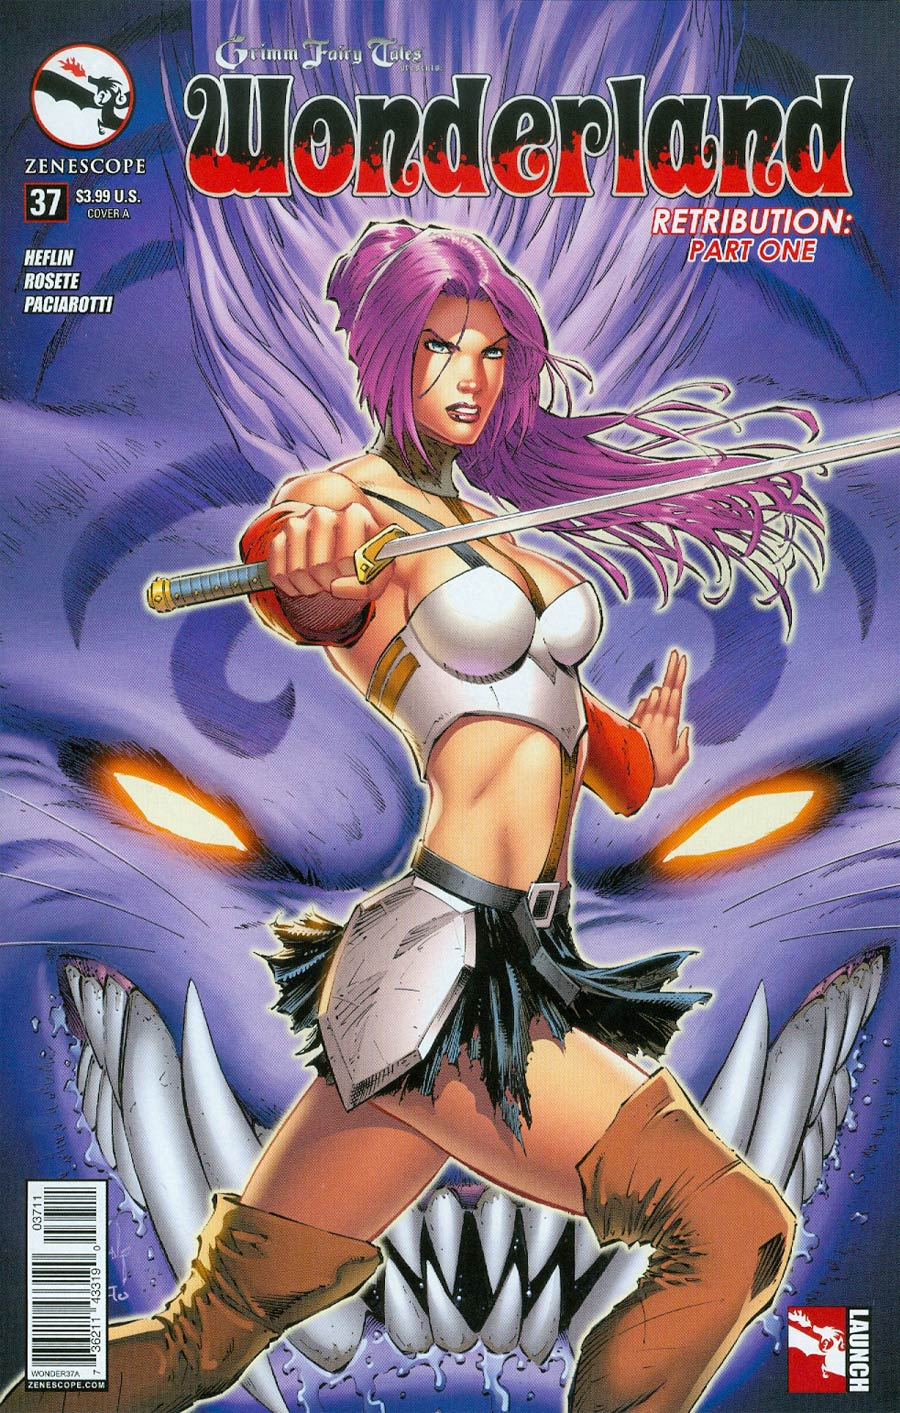 Grimm Fairy Tales Presents Wonderland Vol 2 #37 Cover A Jason Metcalf